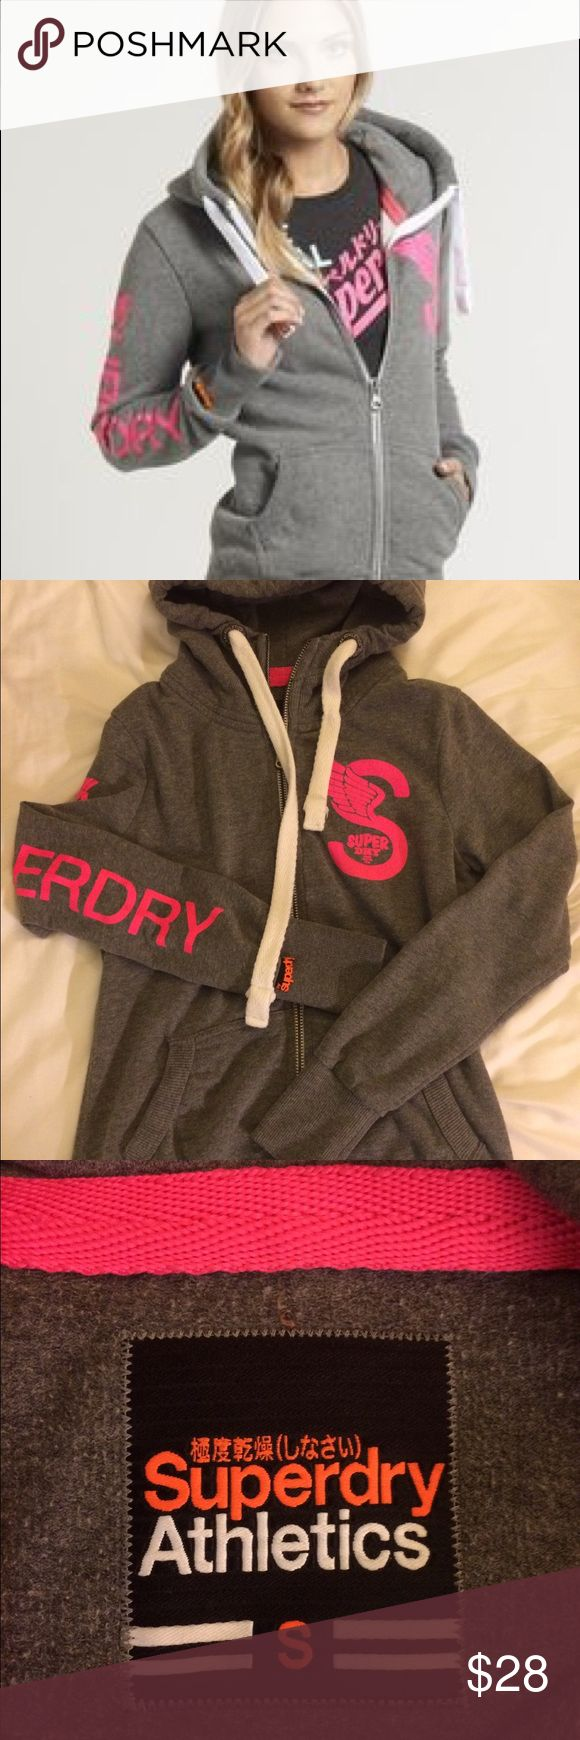 SuperDry Athletic Full-zip Jacket Hooded in great condition, only letters on sleeve are slightly cracked (shown in picture). size small. Superdry Tops Sweatshirts & Hoodies